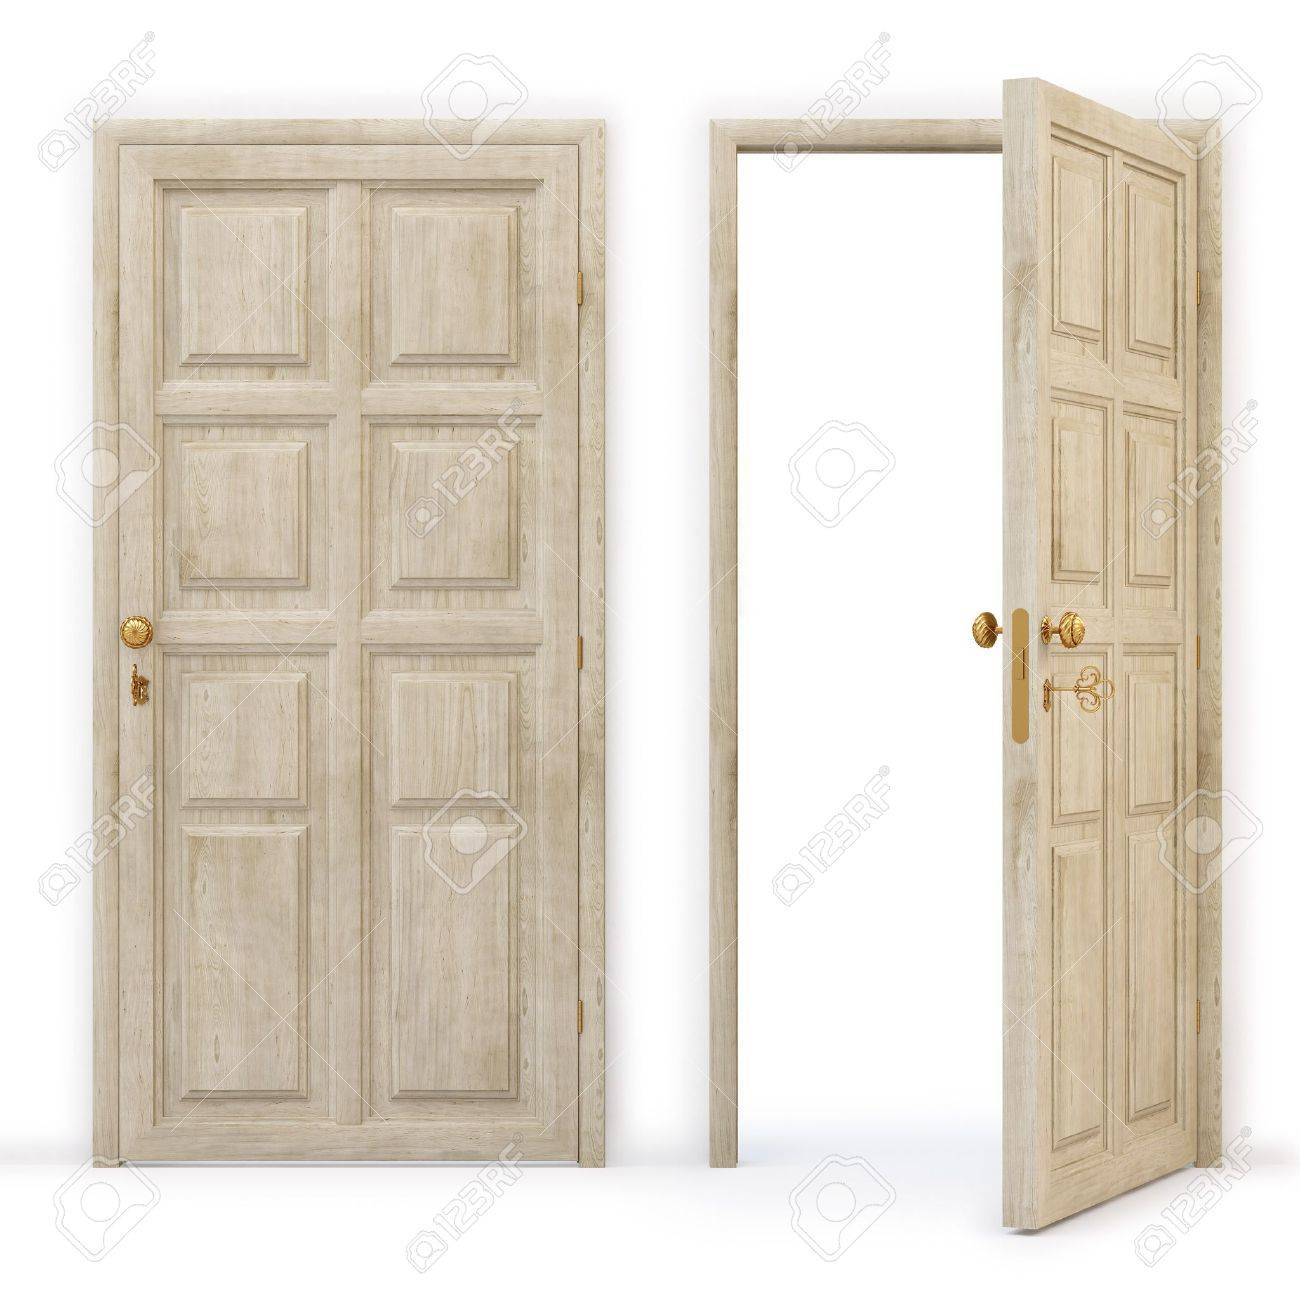 closed door clipart. Wooden Door Clipart Close \u0026 Shut Sc1stpowering Your Closed